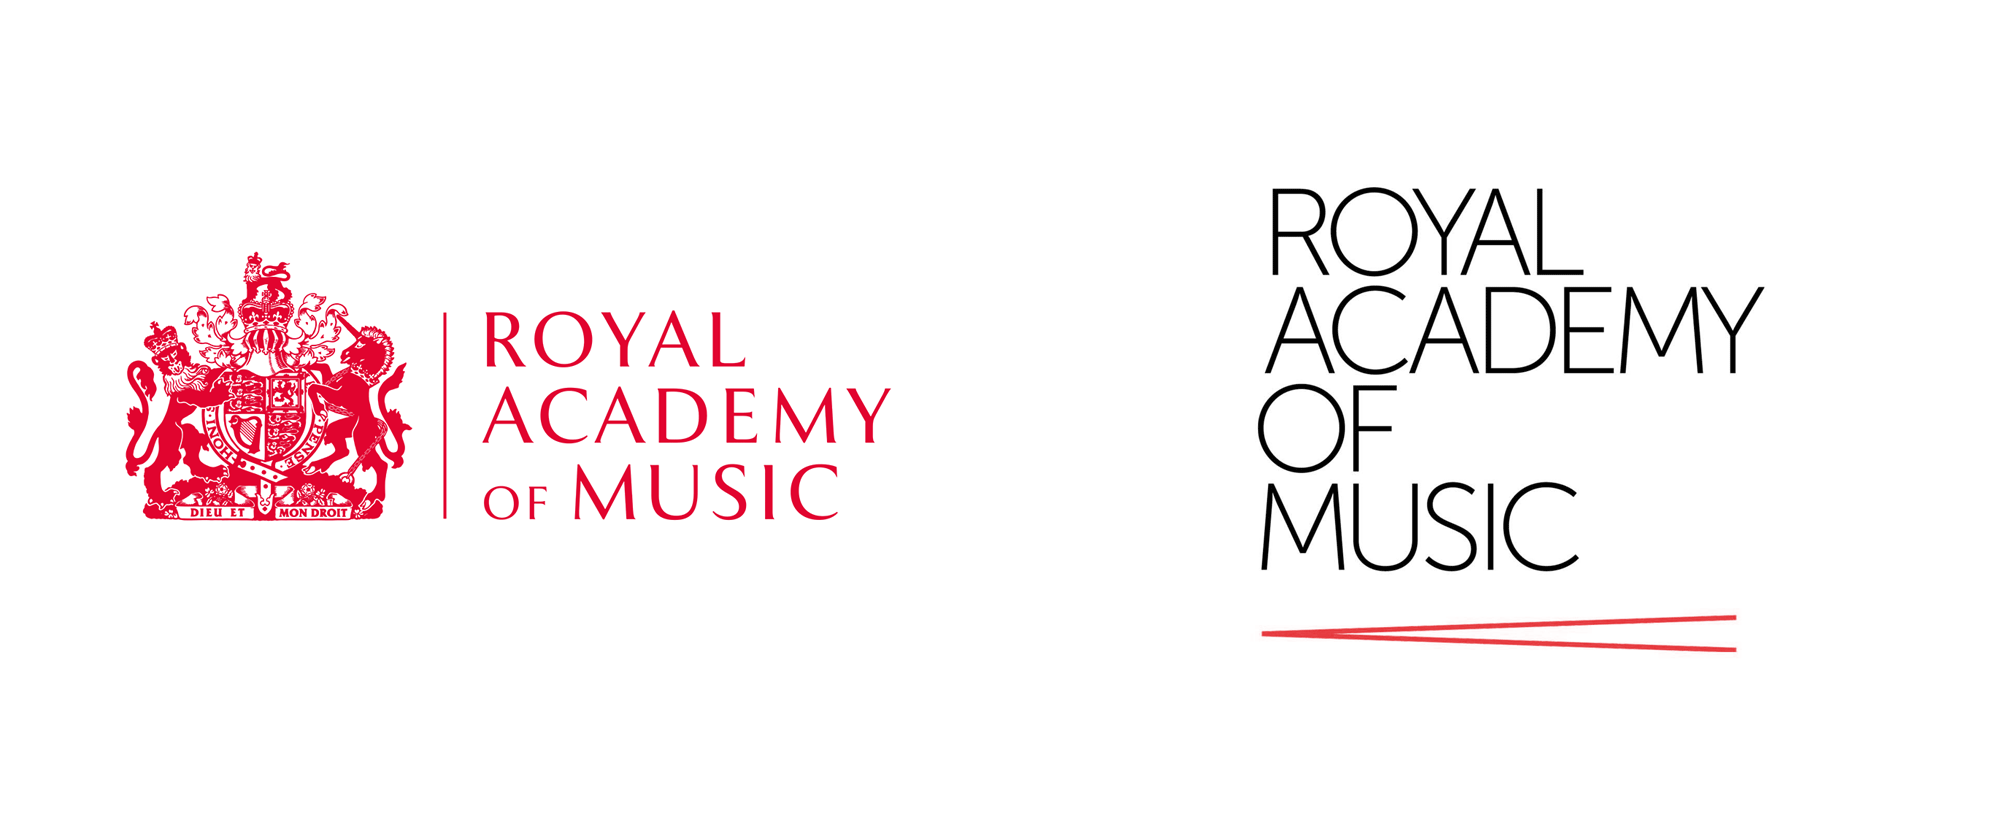 New Logo and Identity for Royal Academy of Music by Johnson Banks